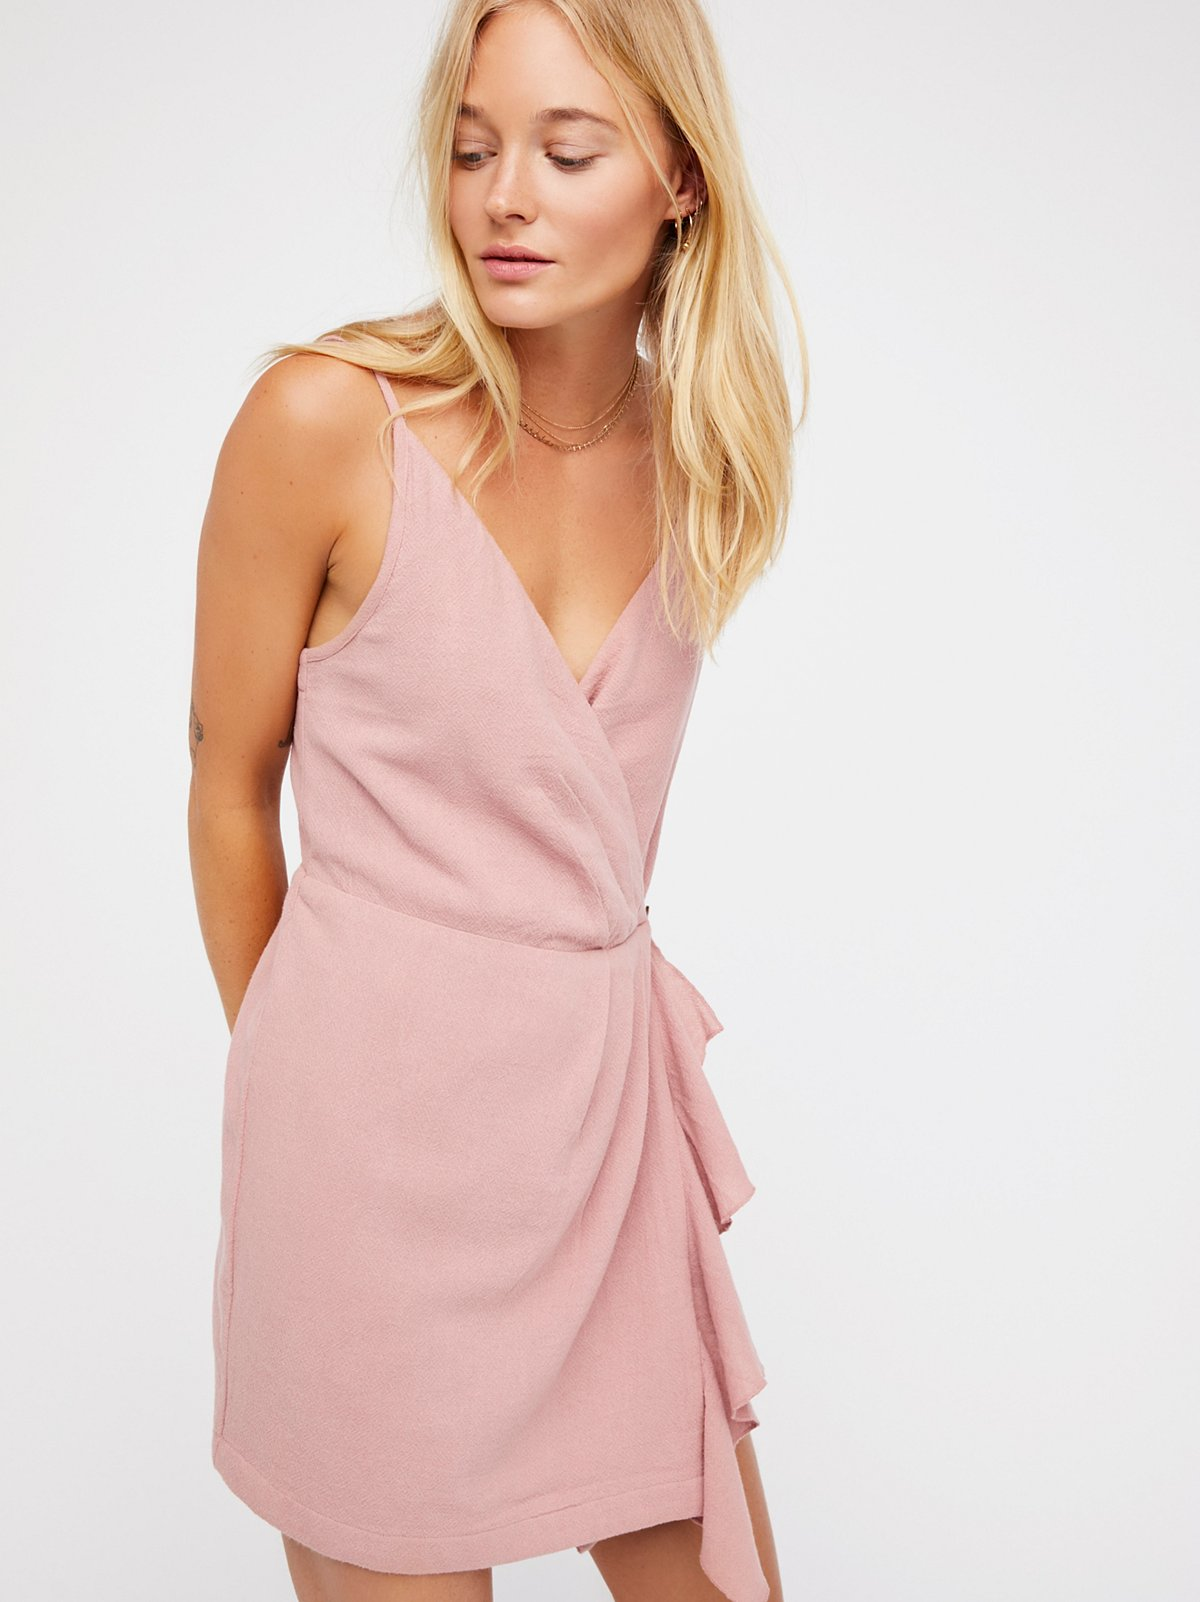 Call It Simple Love Mini Dress